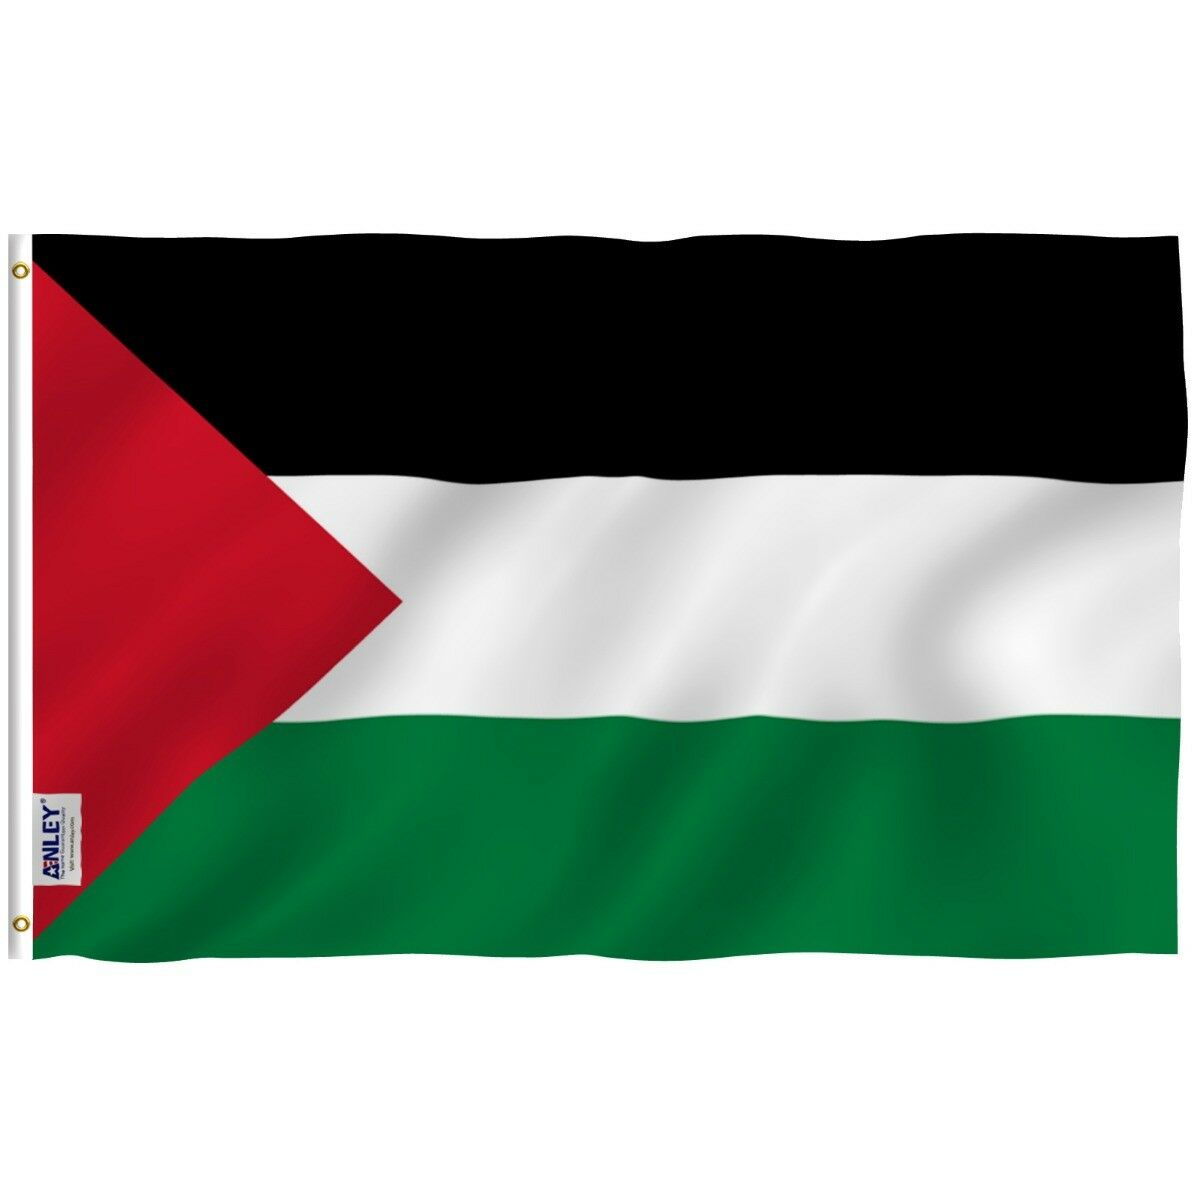 Anley Fly Breeze 3x5 Foot Palestine Flag Palestinian Flags P